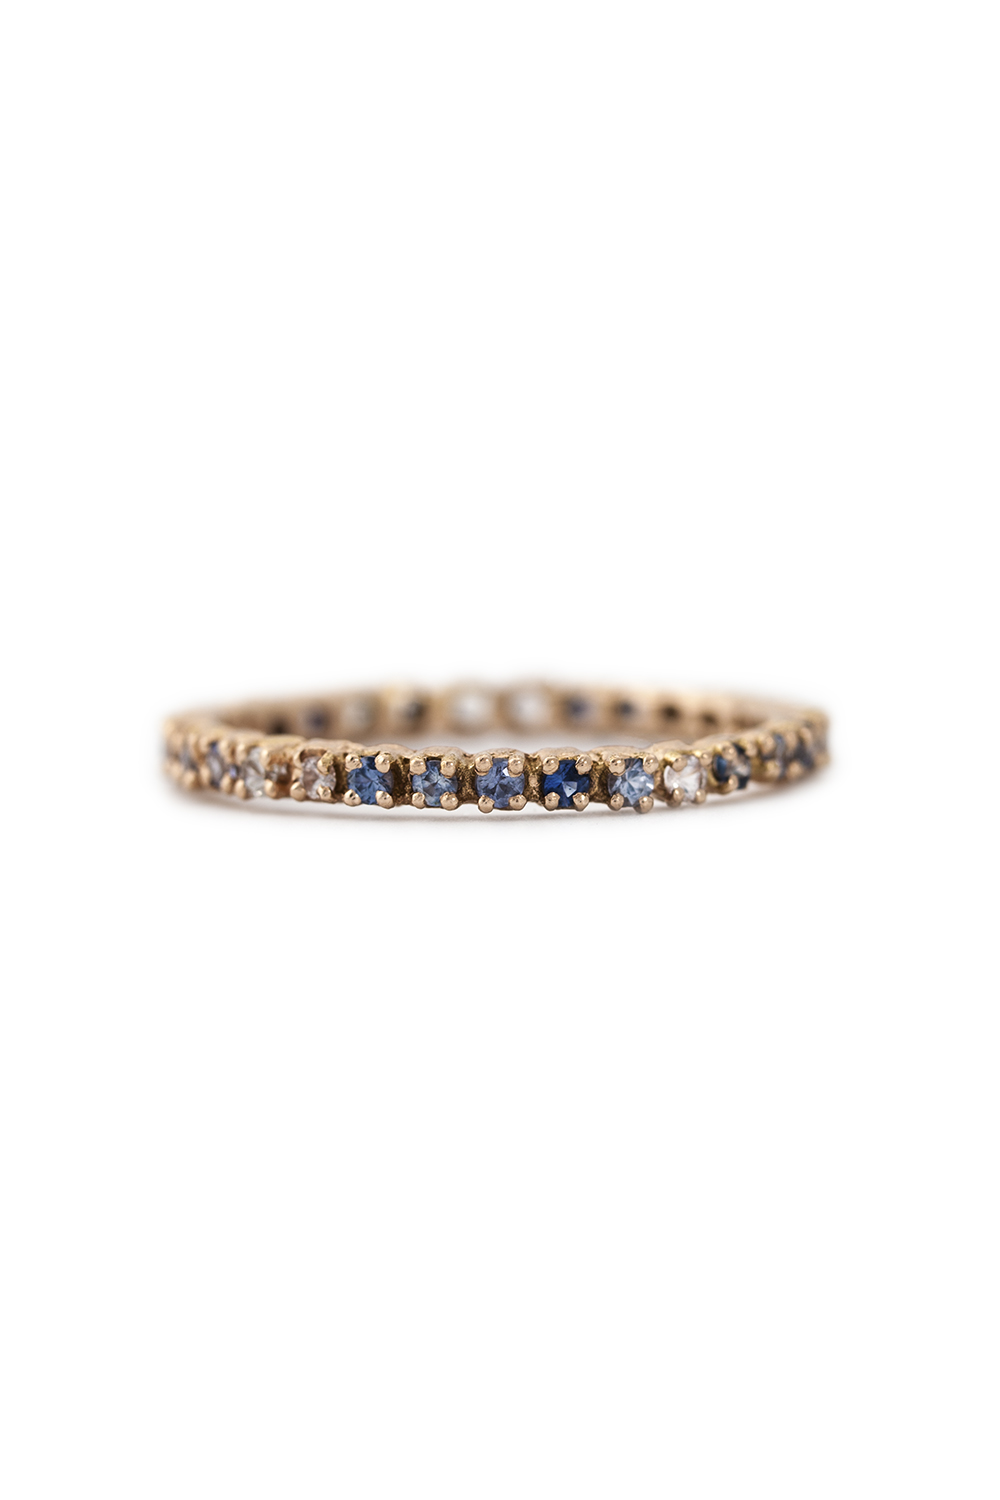 Multi coloured sapphire eternity ring in rose gold, £2600